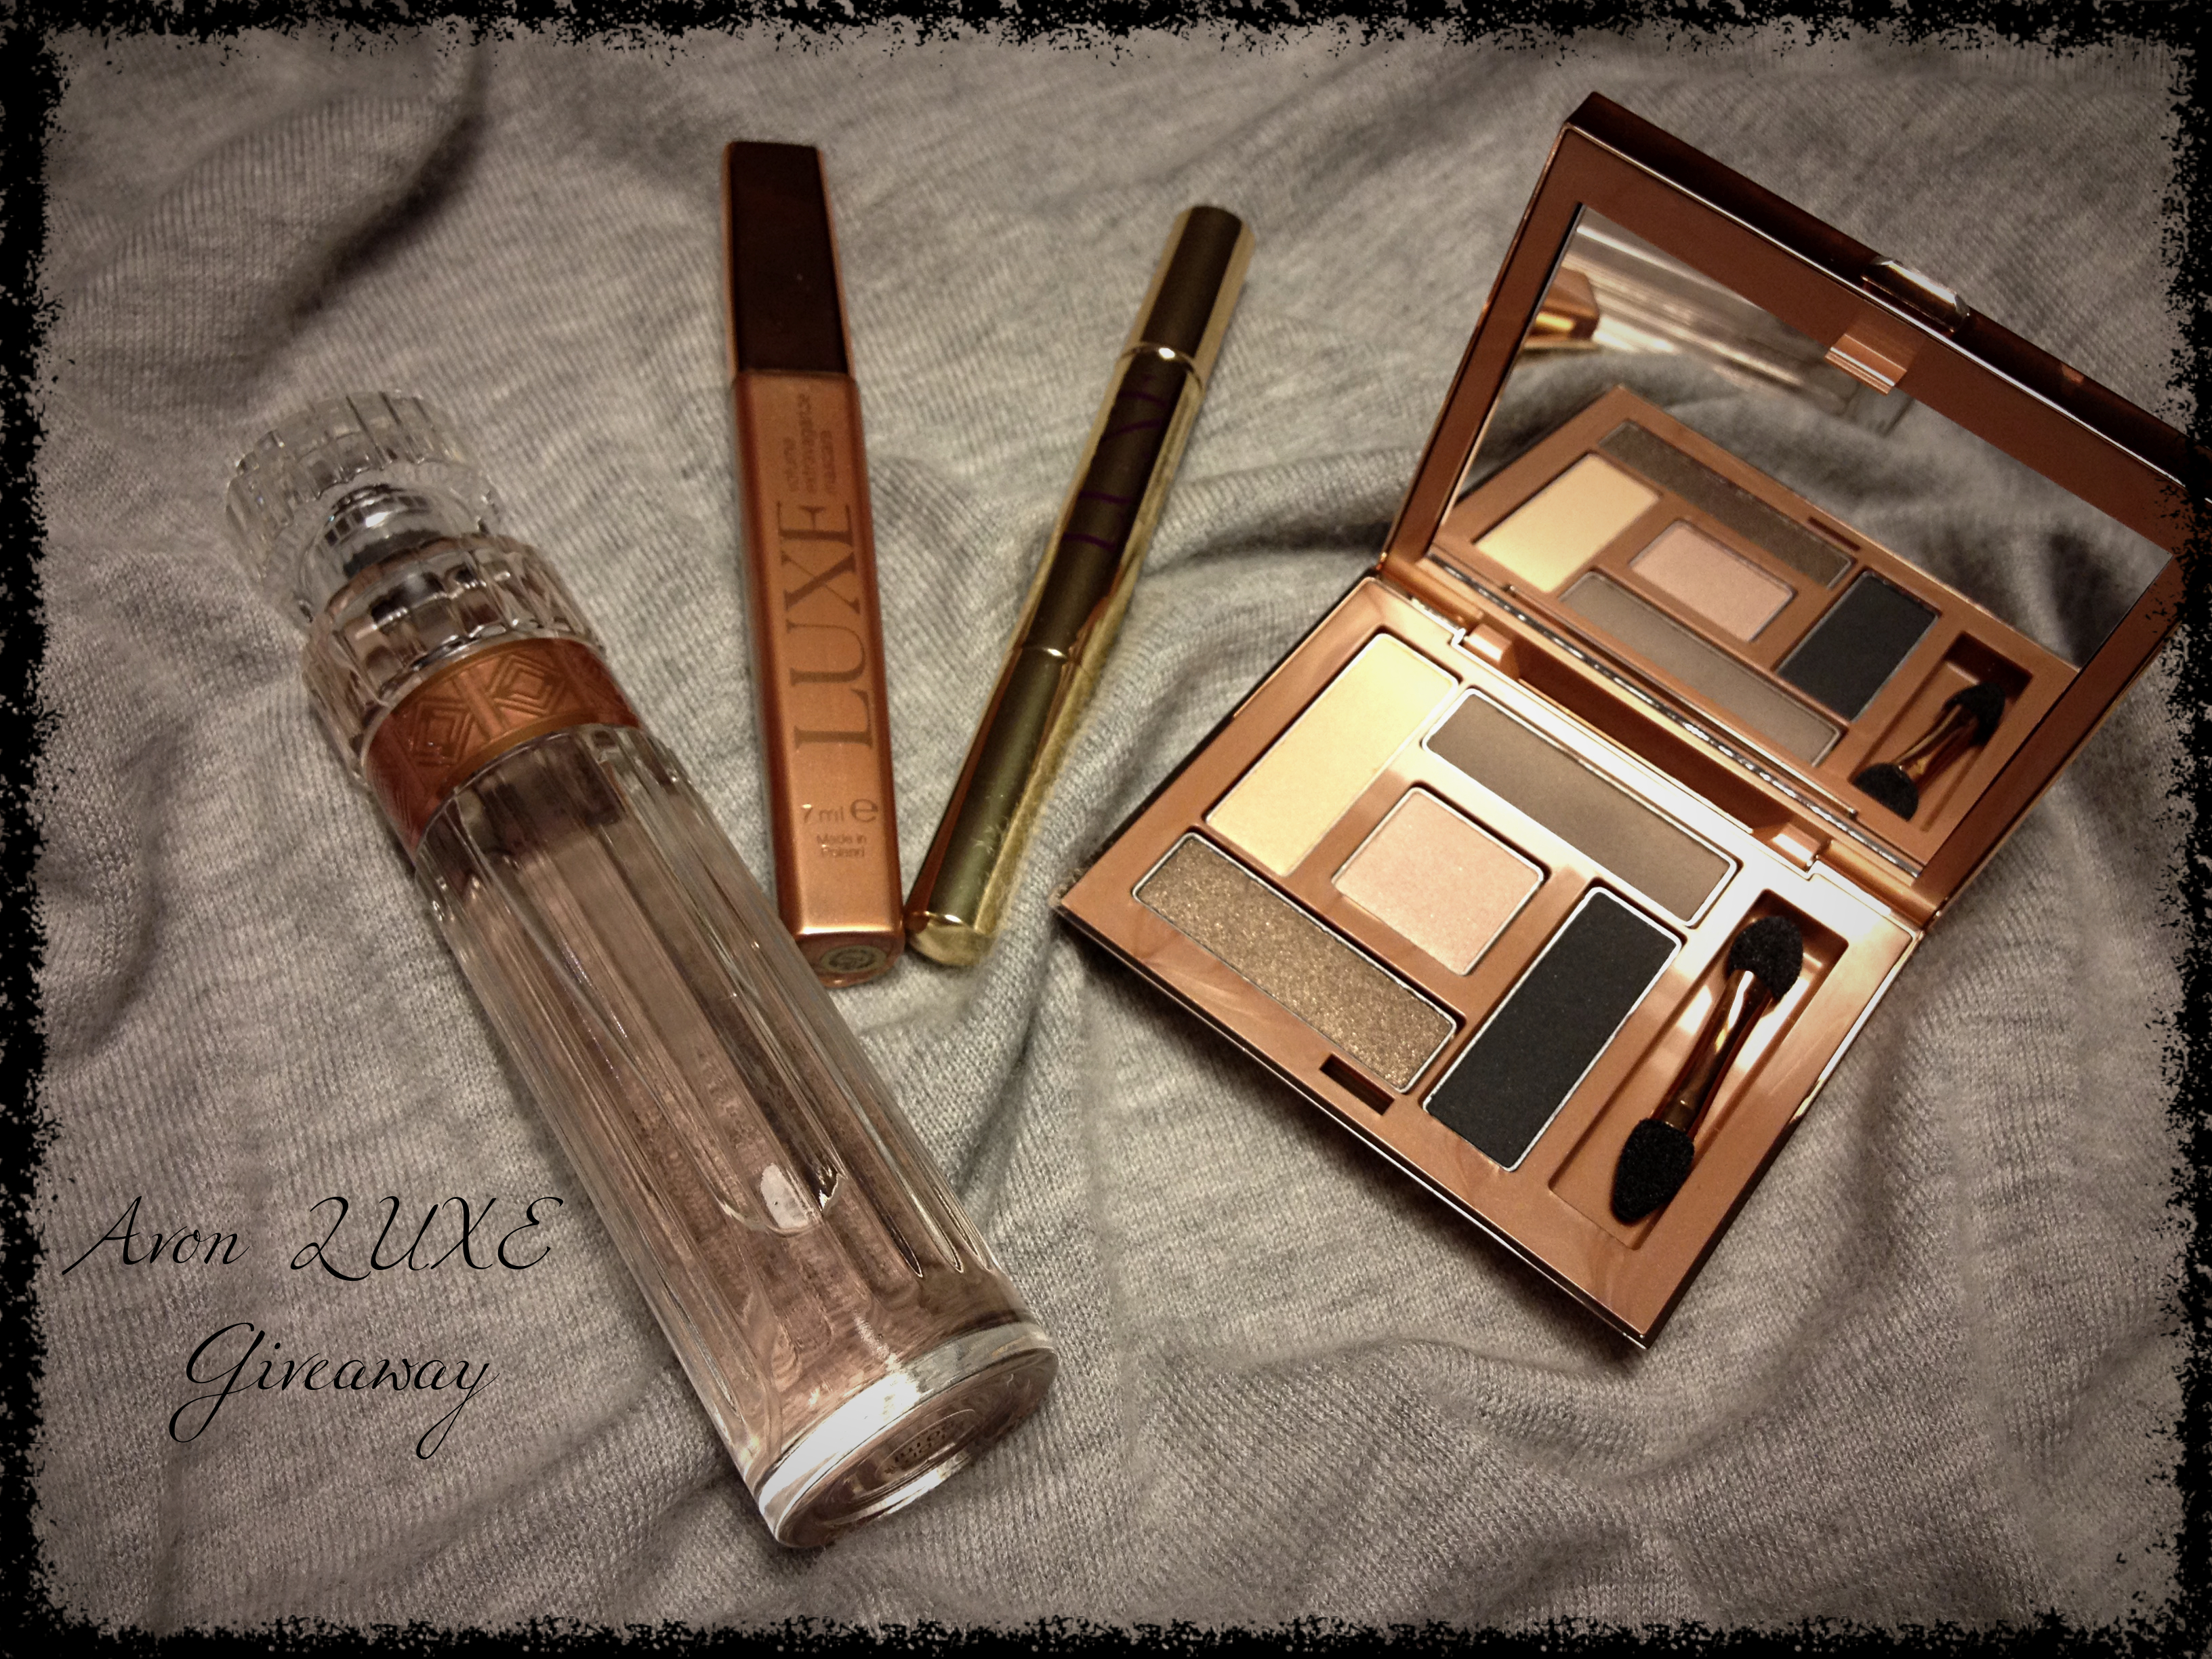 avon luxe giveaway